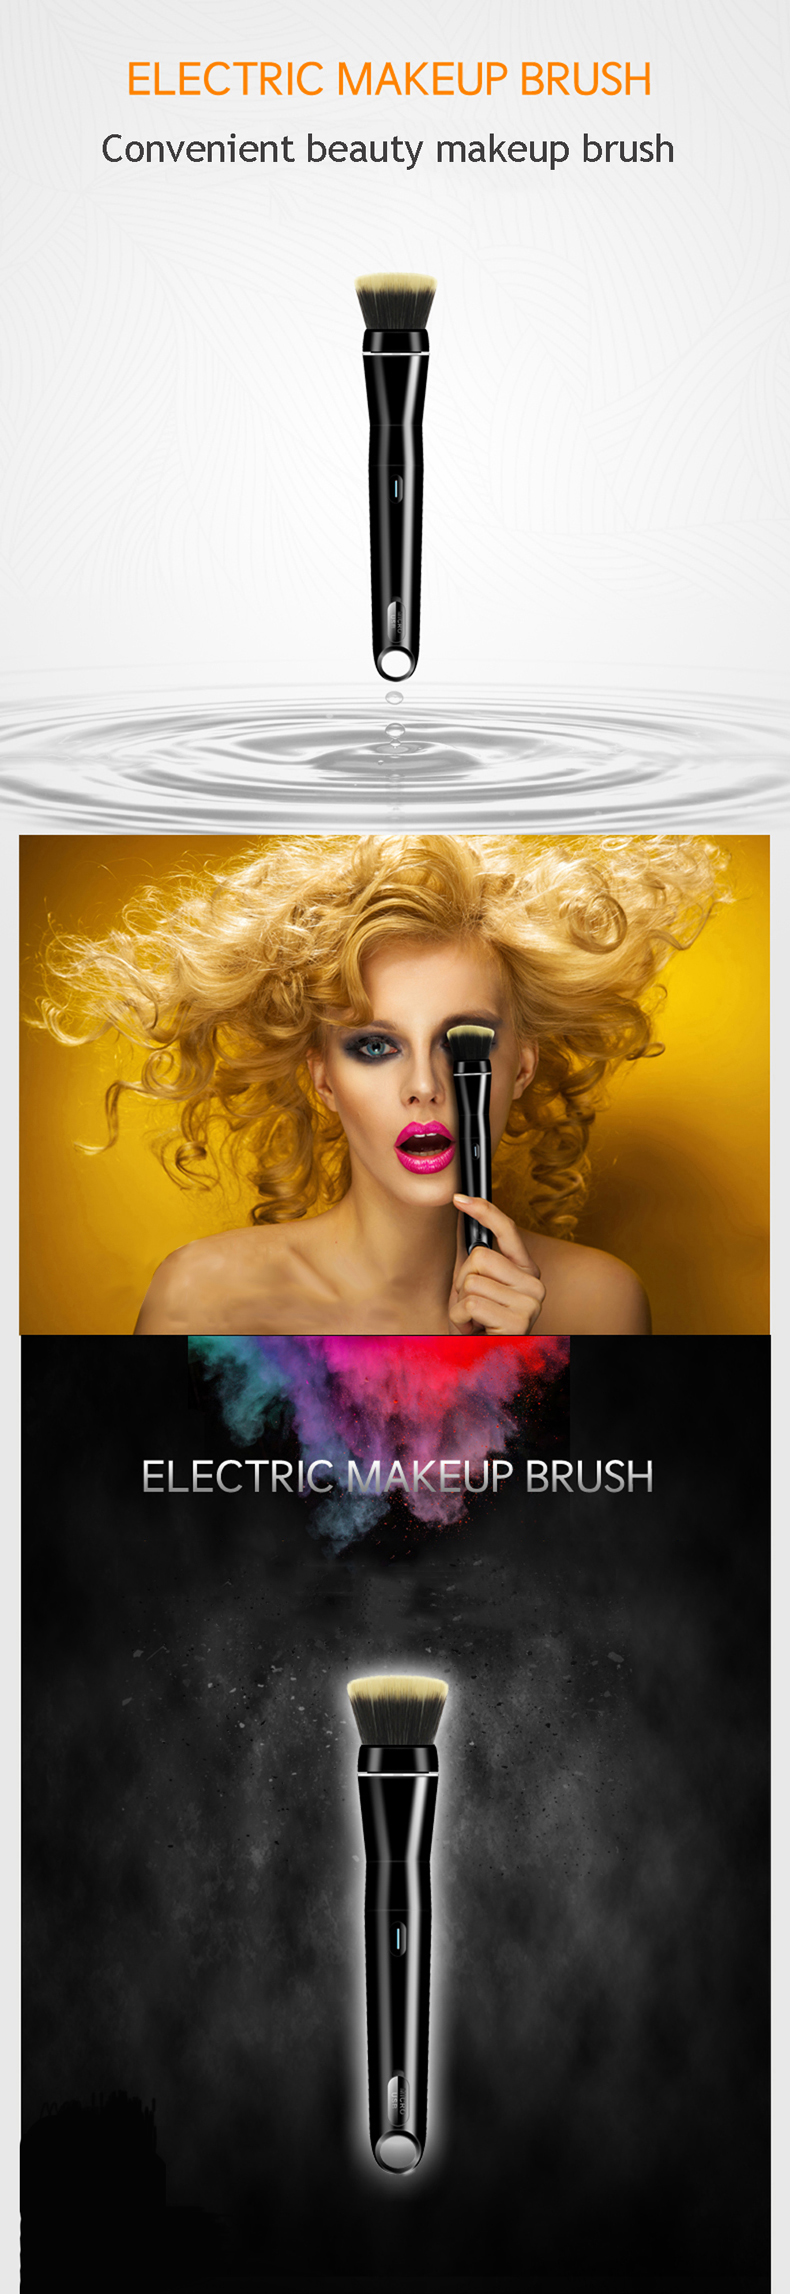 2017 Newest Hot Selling Beauty Care Device USB Rechargeable Cosmetic Tool Electric Makeup Brush